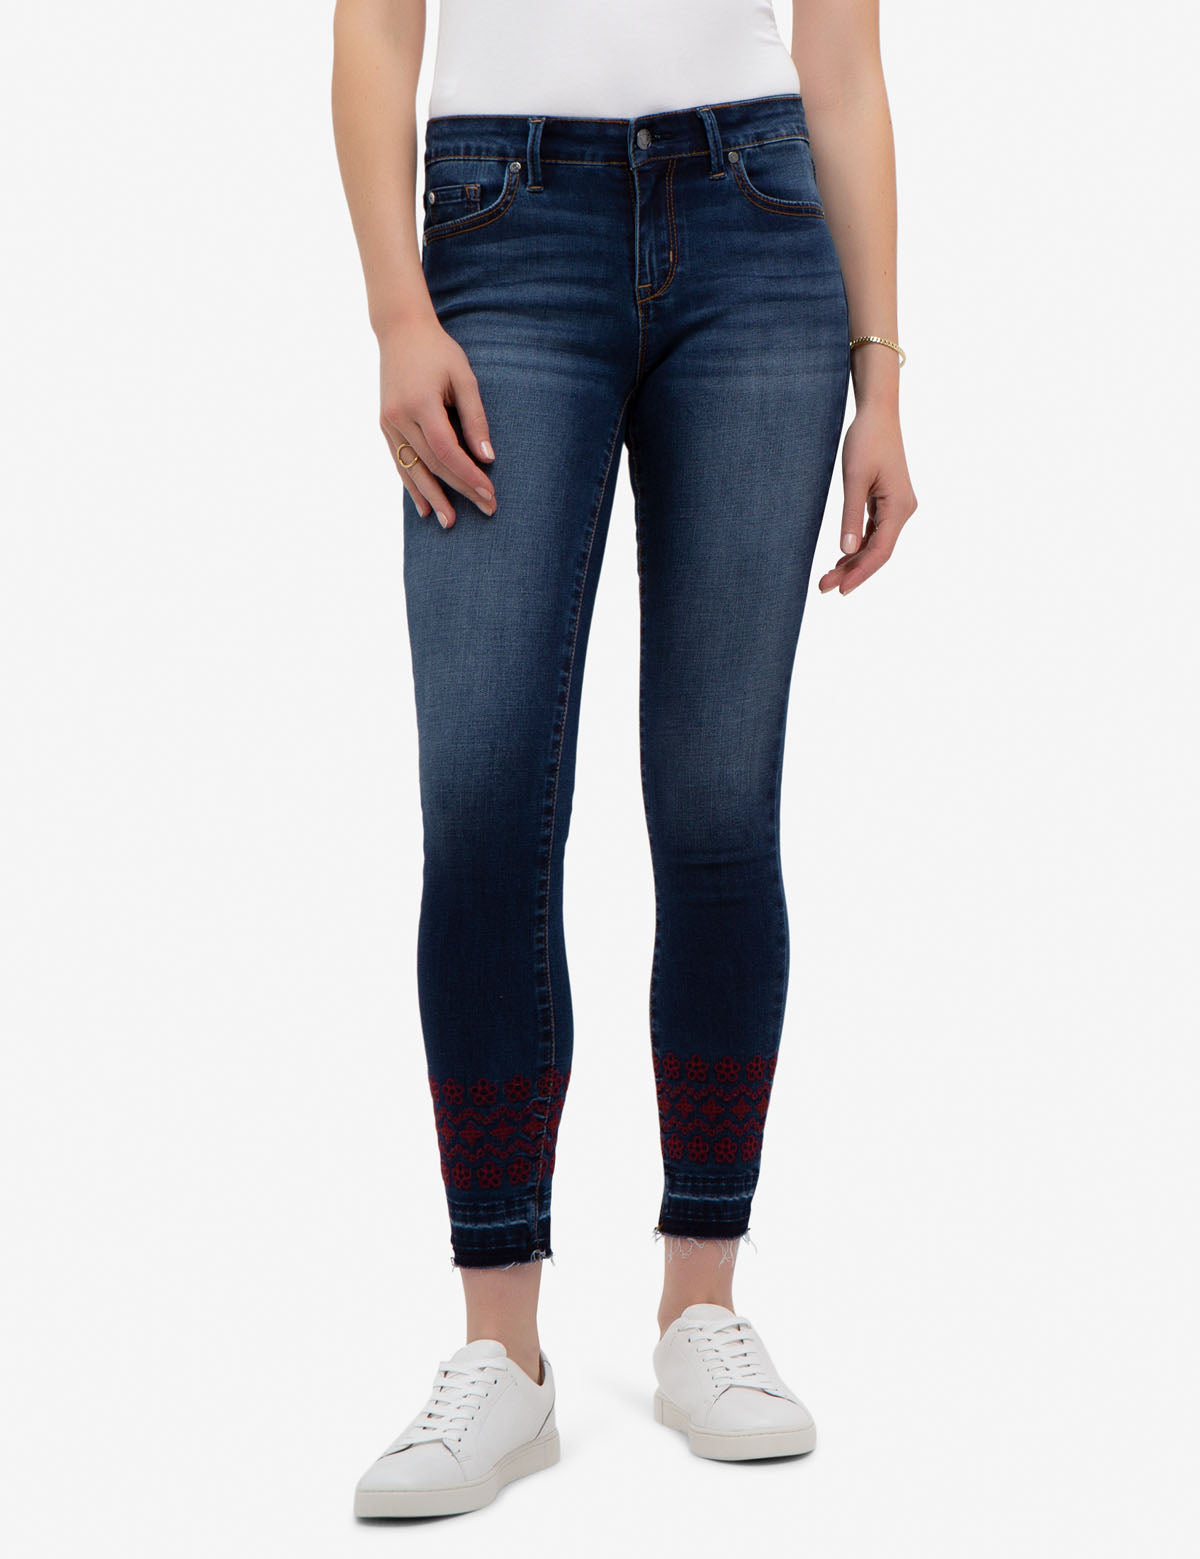 REPREVE® MID RISE SKINNY EMBROIDERED JEANS